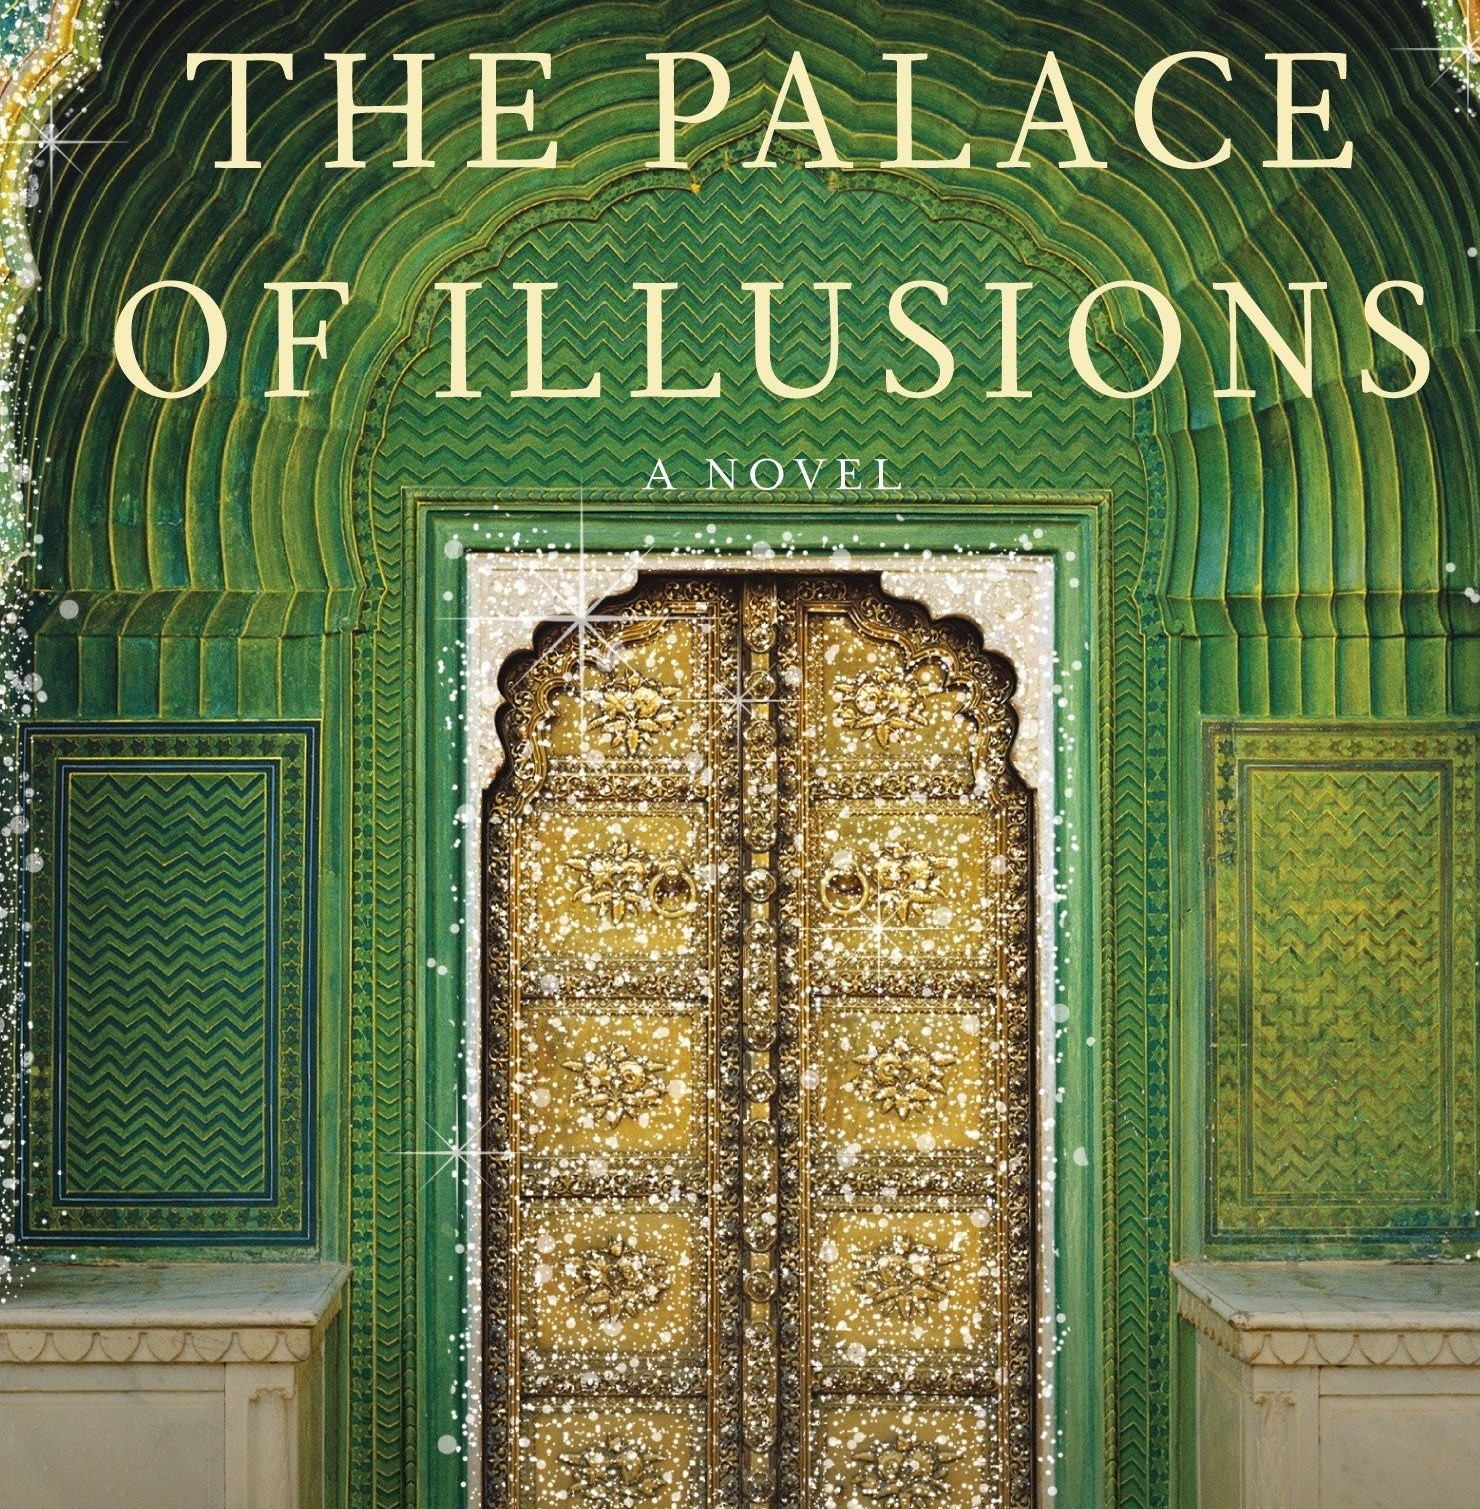 Wasn't It Supposed To Be a Happy 'Palace Of Illusions'?